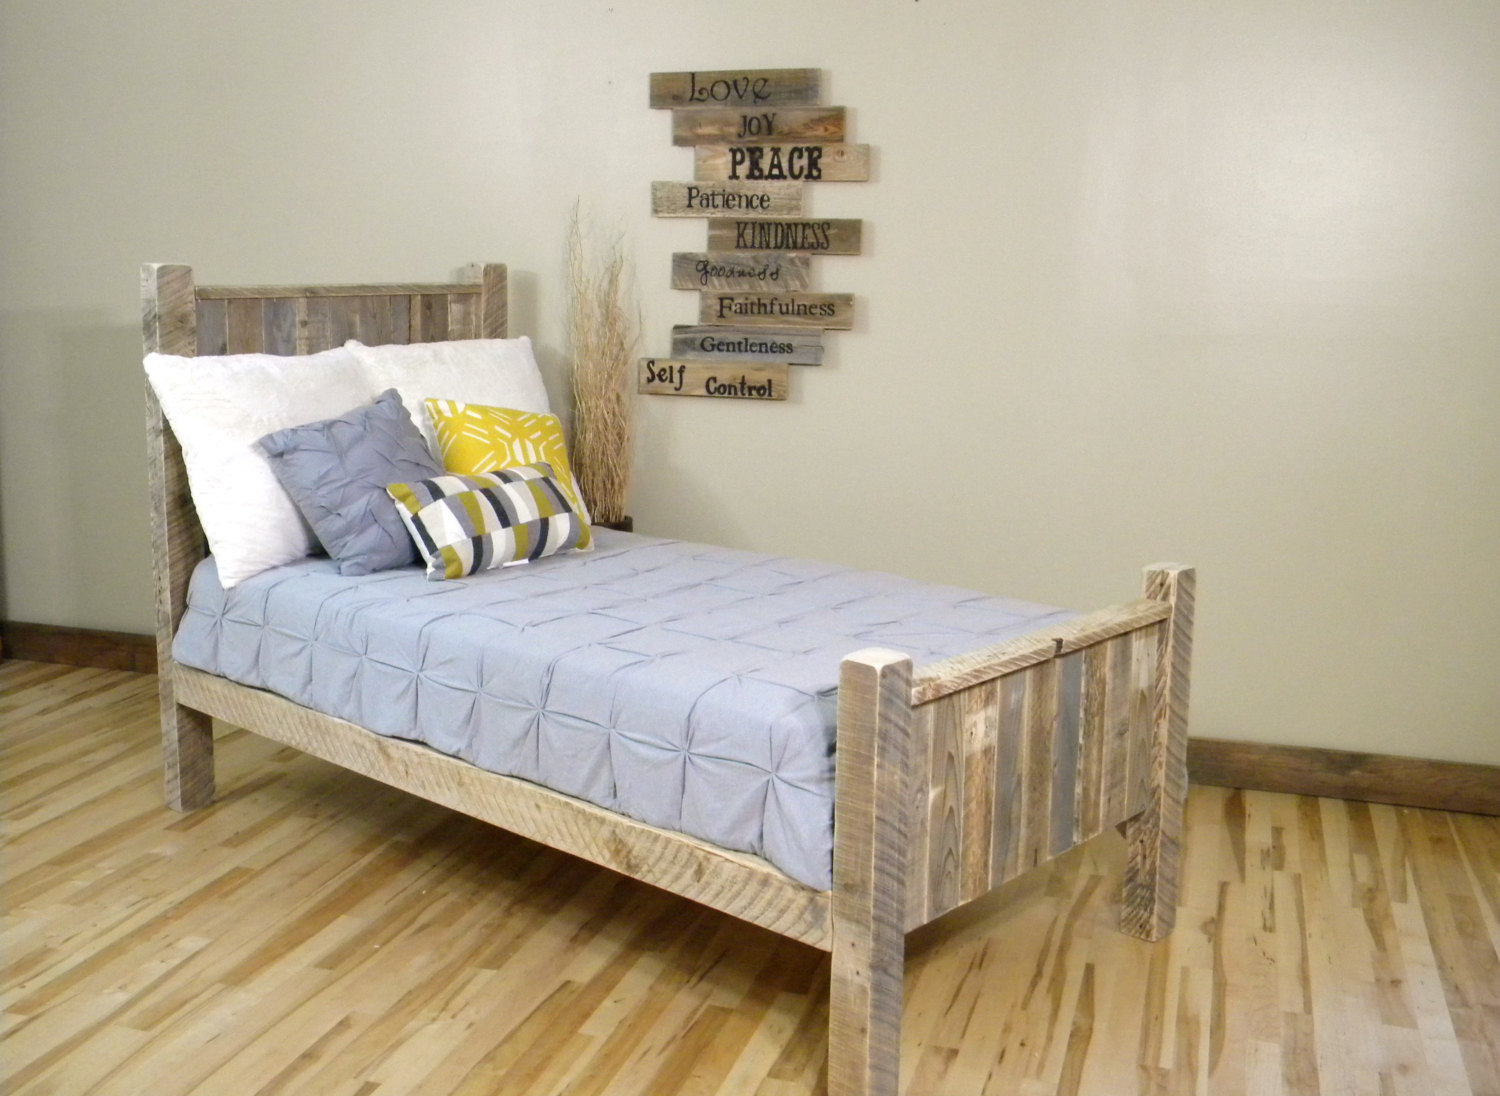 Top Diy Pallet Bed Projects - Elly\'s DIY Blog